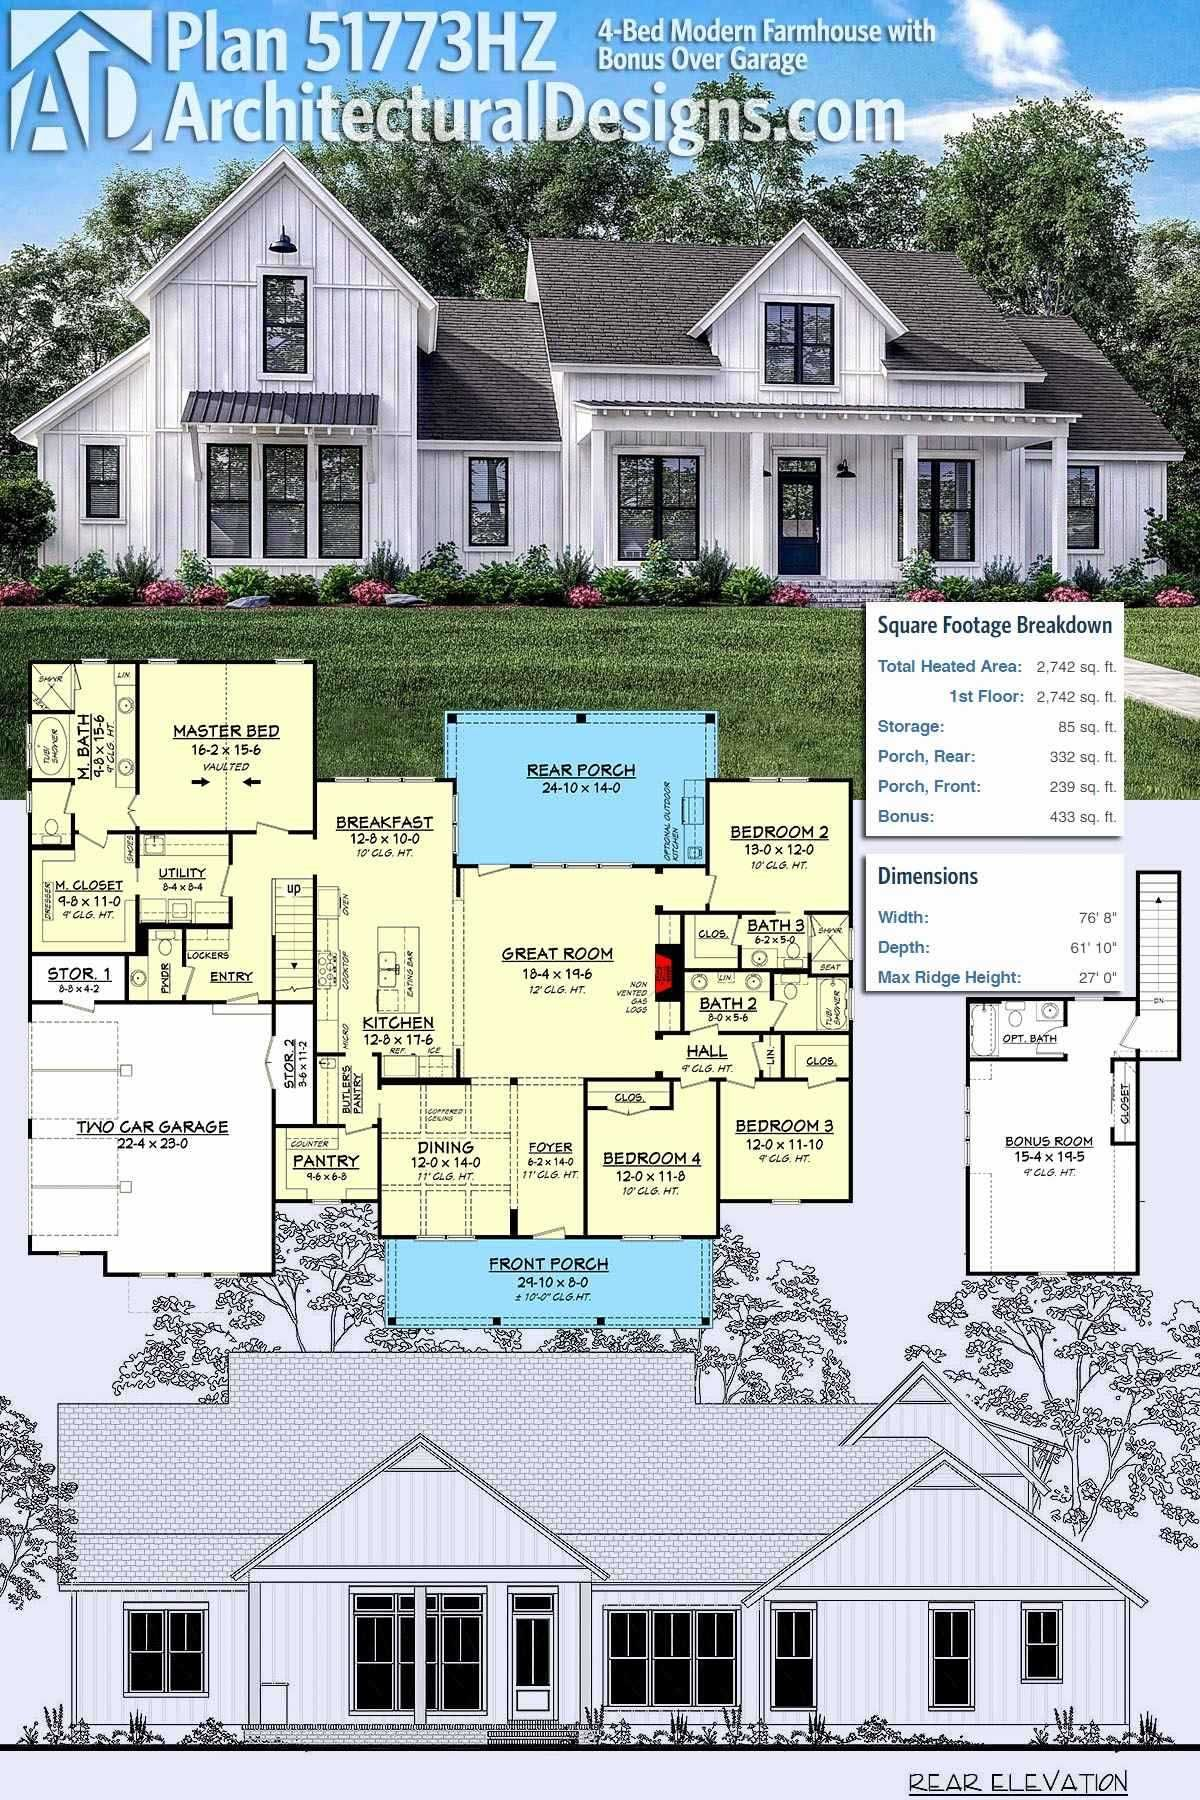 Architectural Modern Farmhouse Design Inspirational Architectural Modern Farmhouse Modern Farmhouse Plans Modern Farmhouse Floorplan Modern Farmhouse Floors